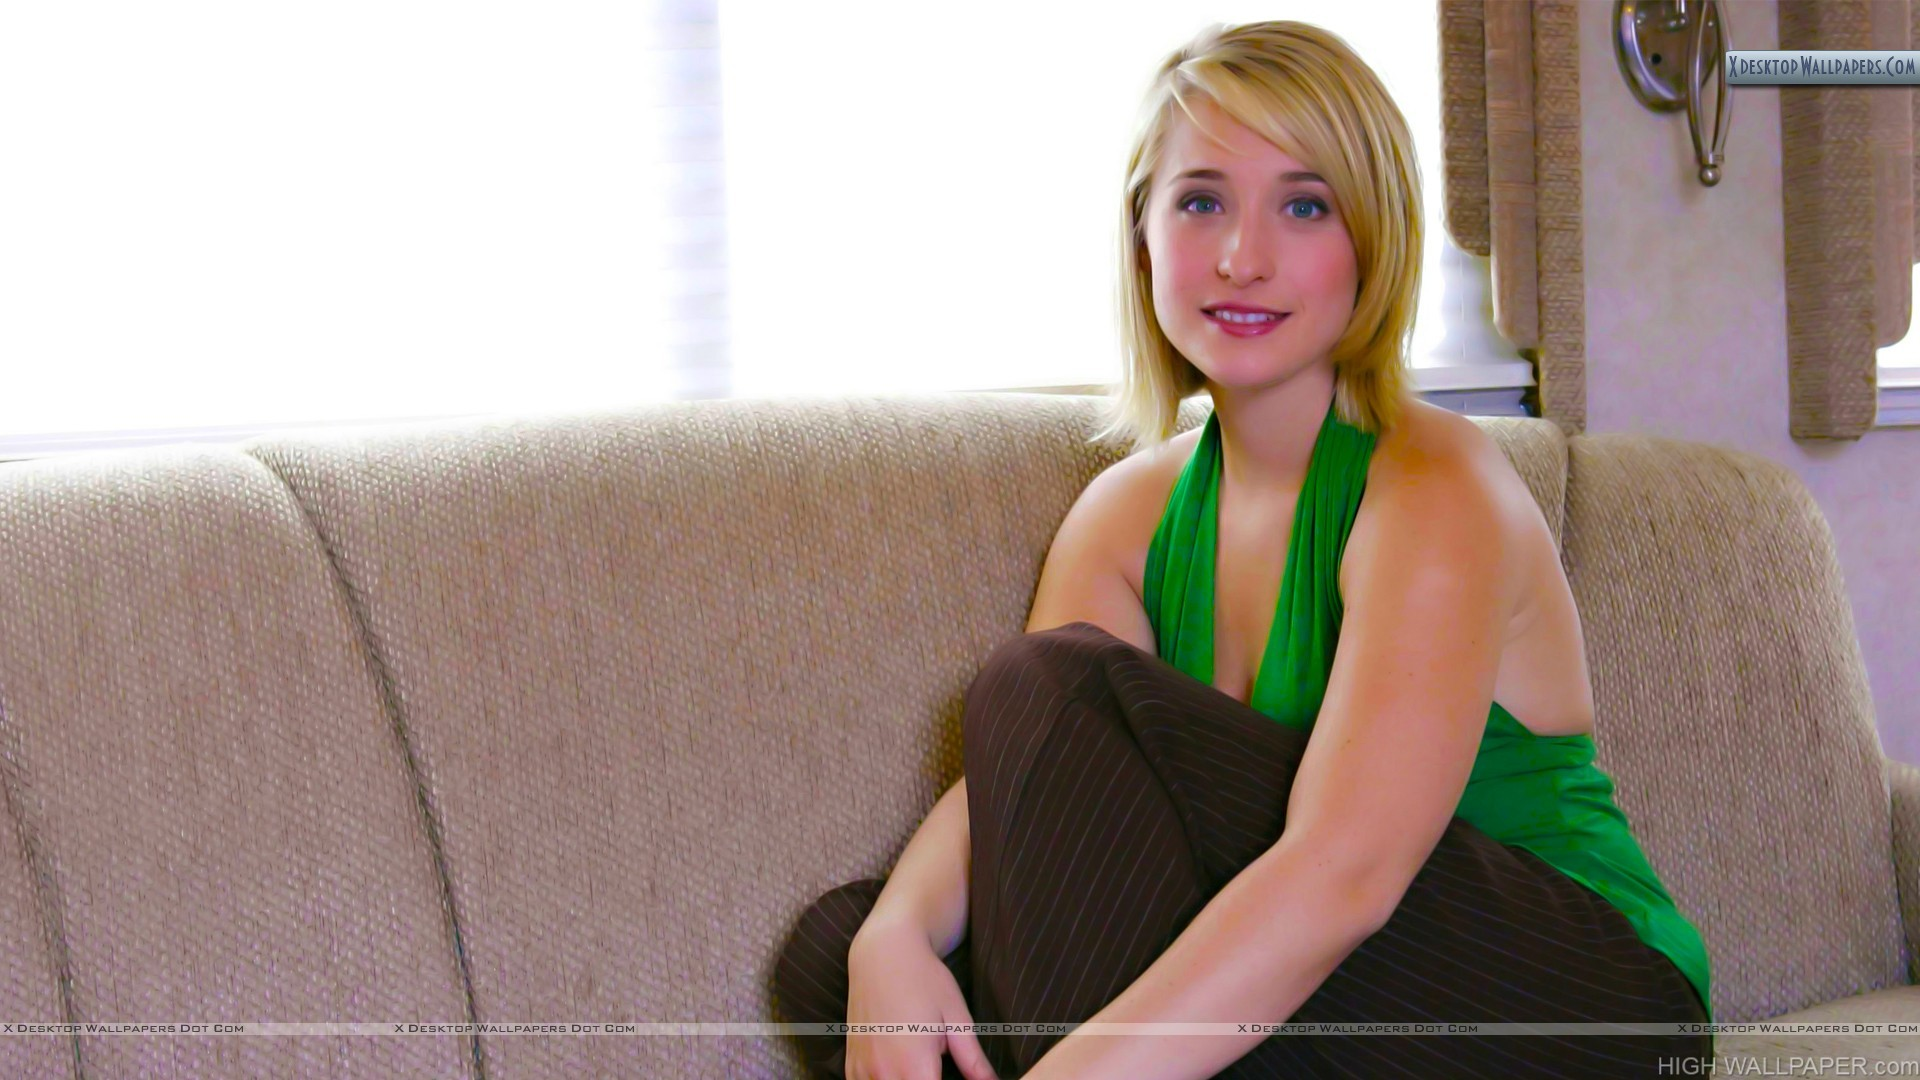 Allison Mack Awesom Picture